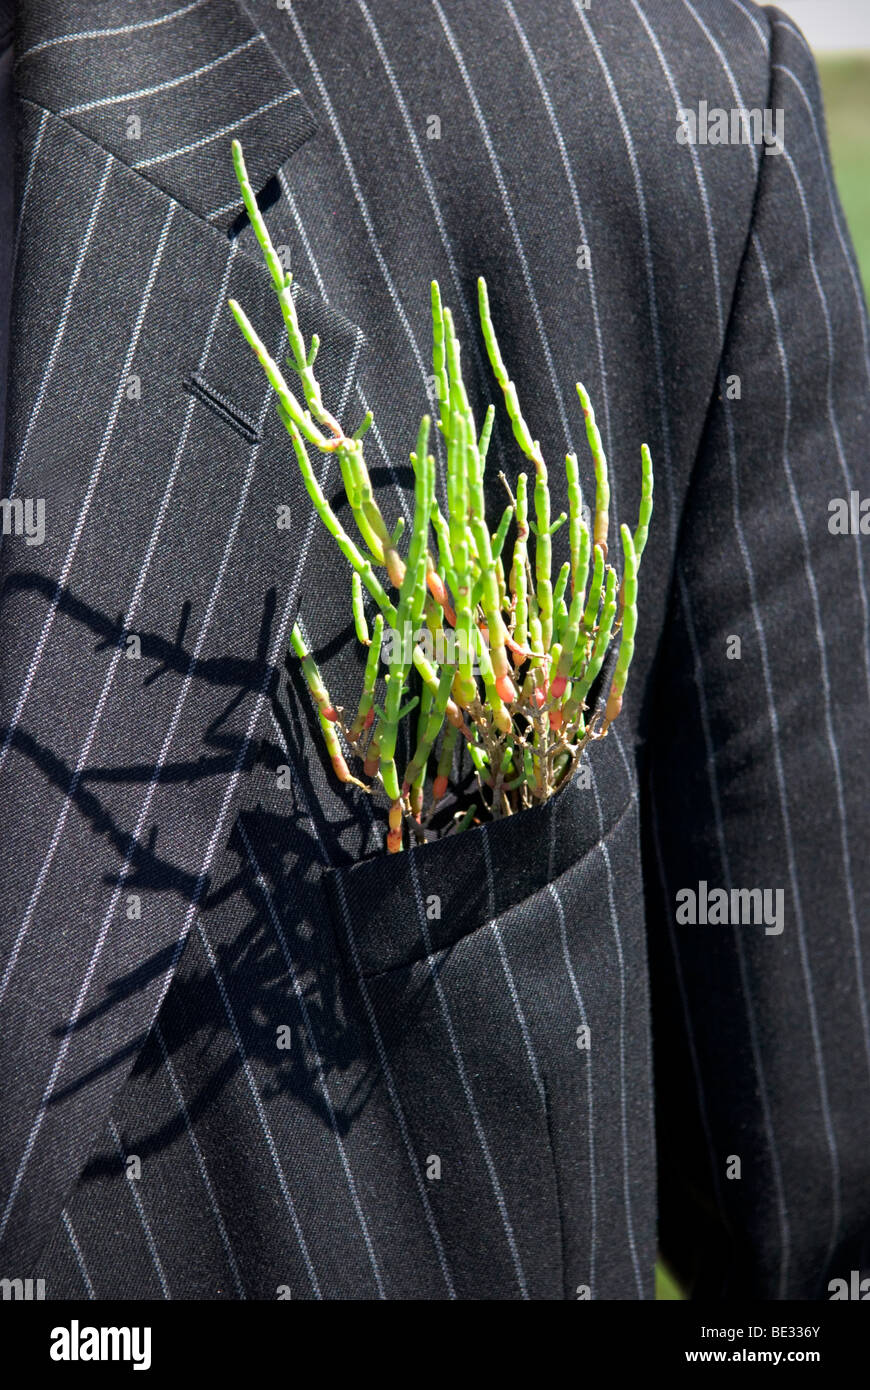 close up of a green plant sticking out of pocket on a pinstriped suit - Stock Image